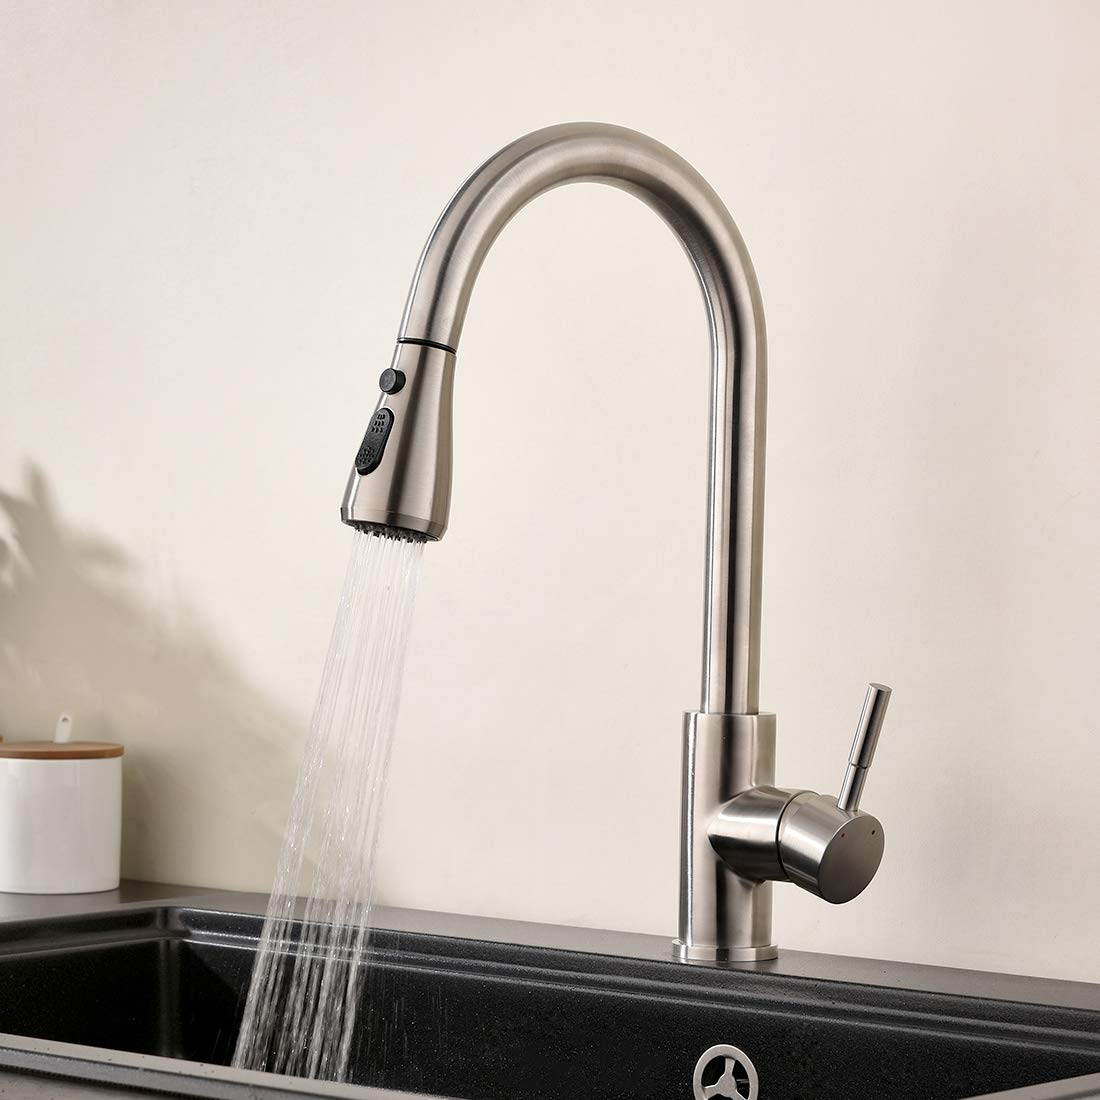 GIMILI Kitchen Faucet Stainless Steel